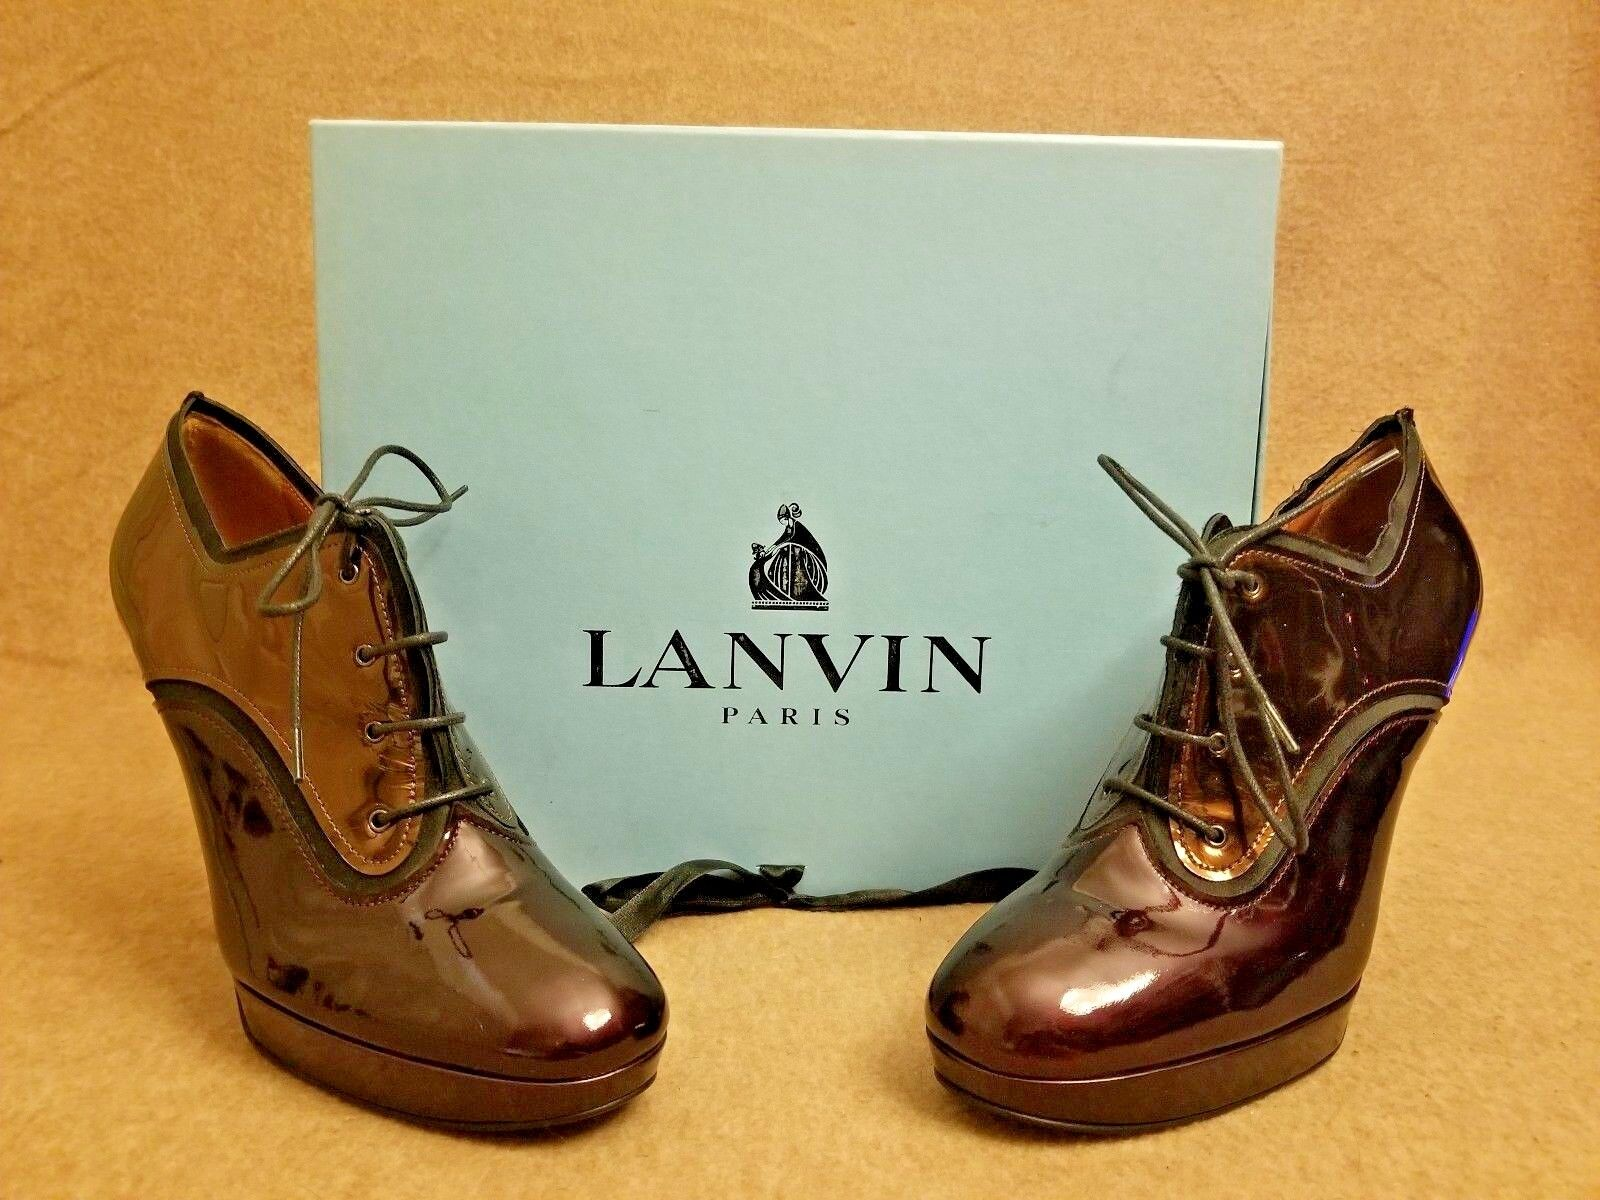 New Lanvin Women Boots Bronze Patent Leather Lace Up Ankle Heel Booties Size 38